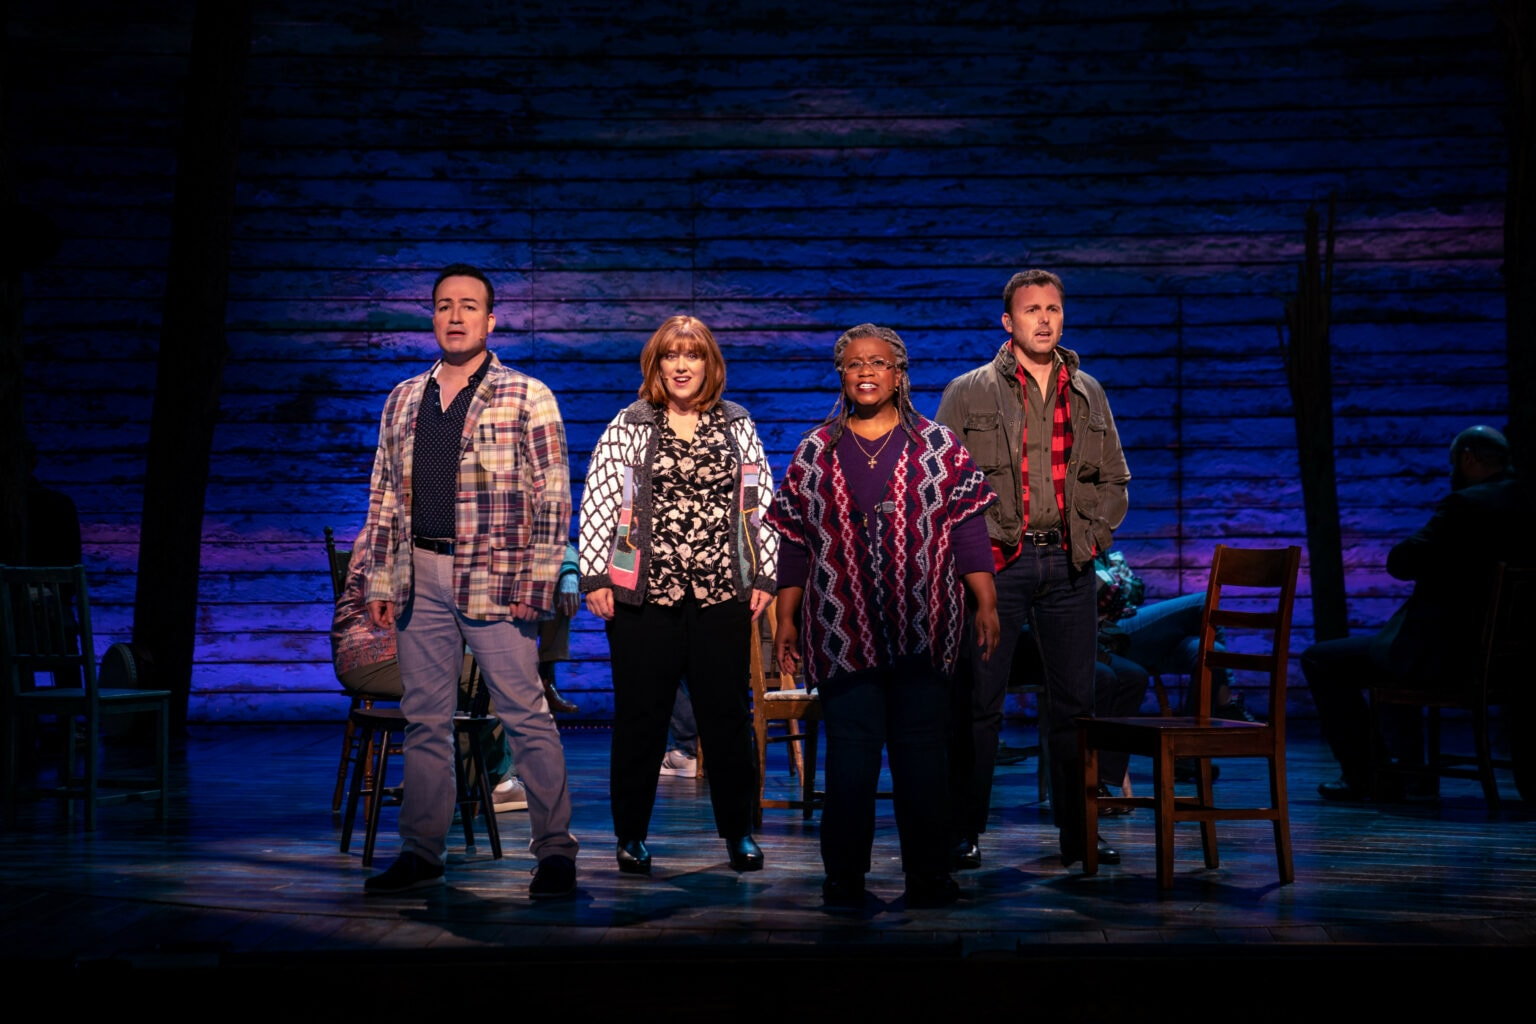 Come From Away review: On 9/11, the small town of Gander rises to the occasion.